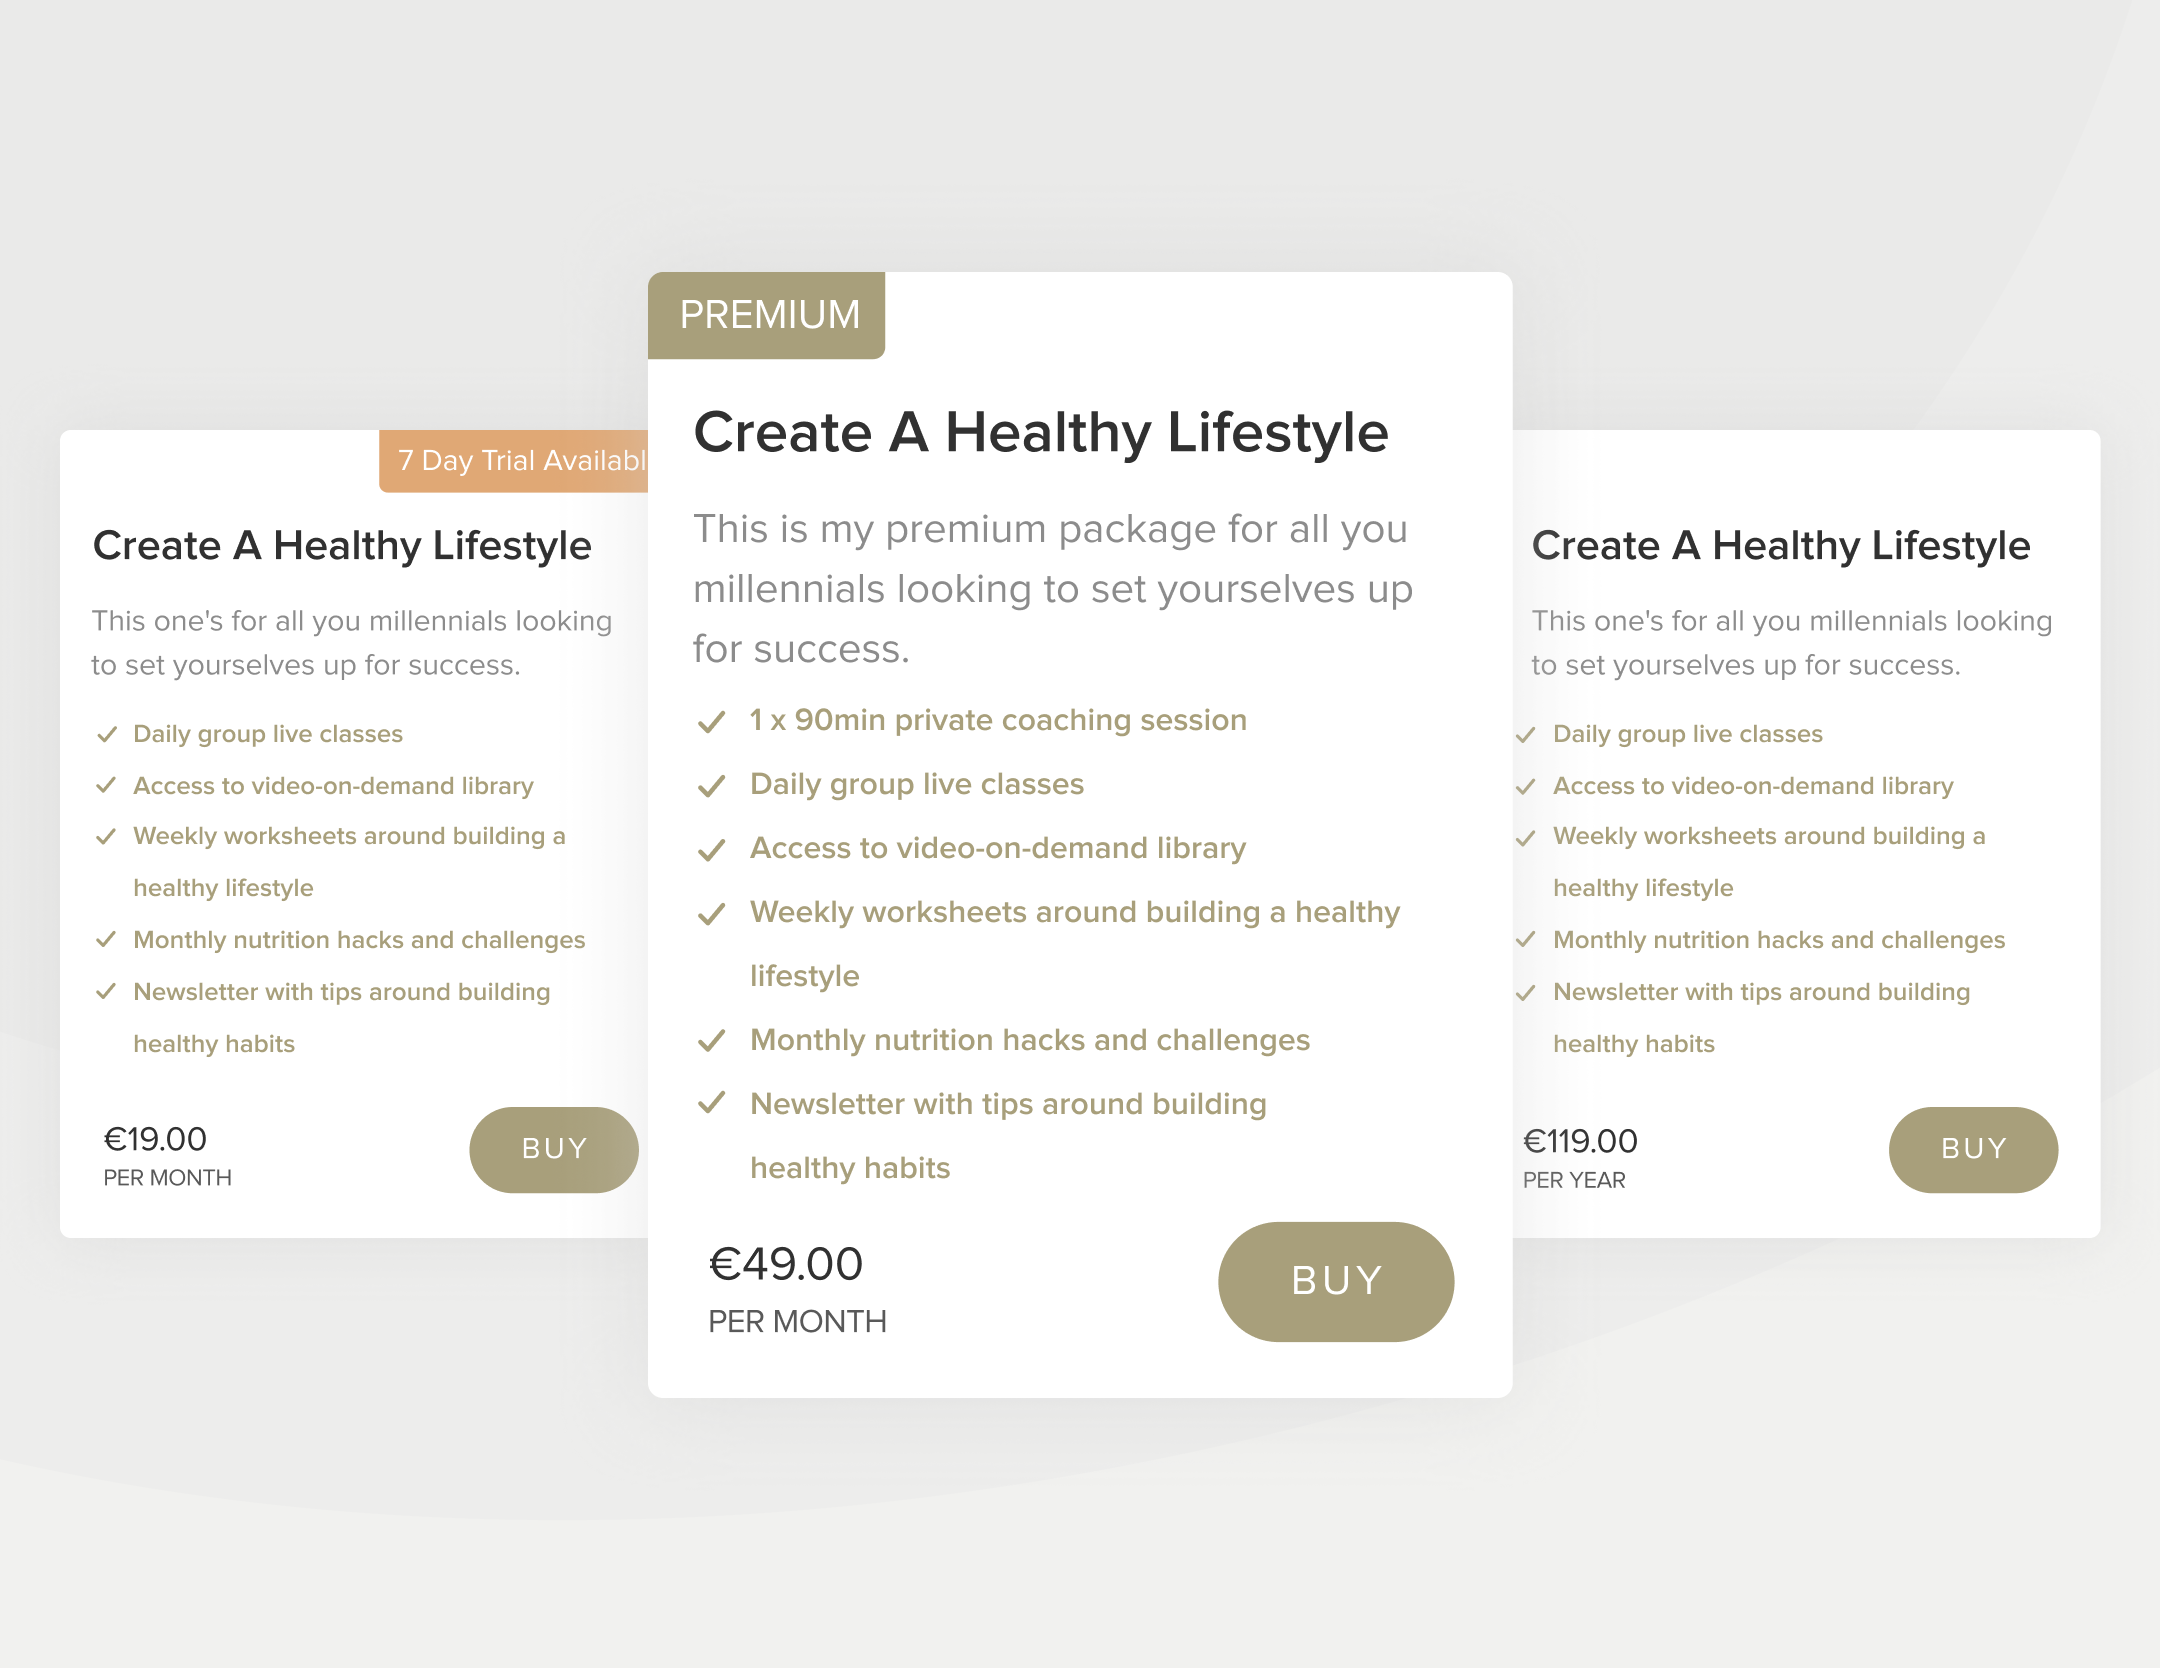 create a healthy lifestyle - this one's for all you millennials looking to set yourselves up for success